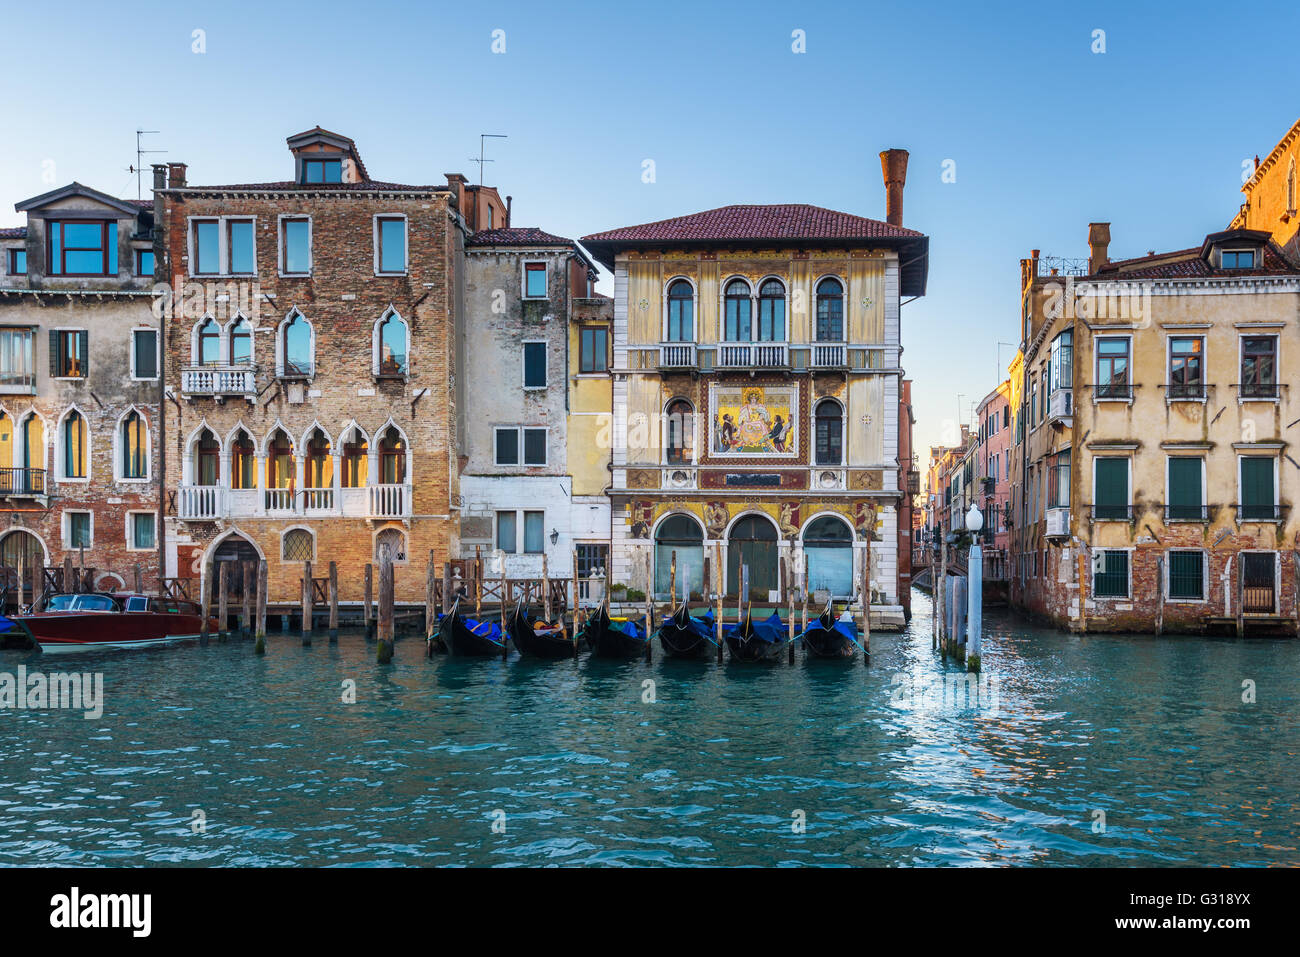 Water channels the biggest tourist attractions in Italy, Venice. - Stock Image